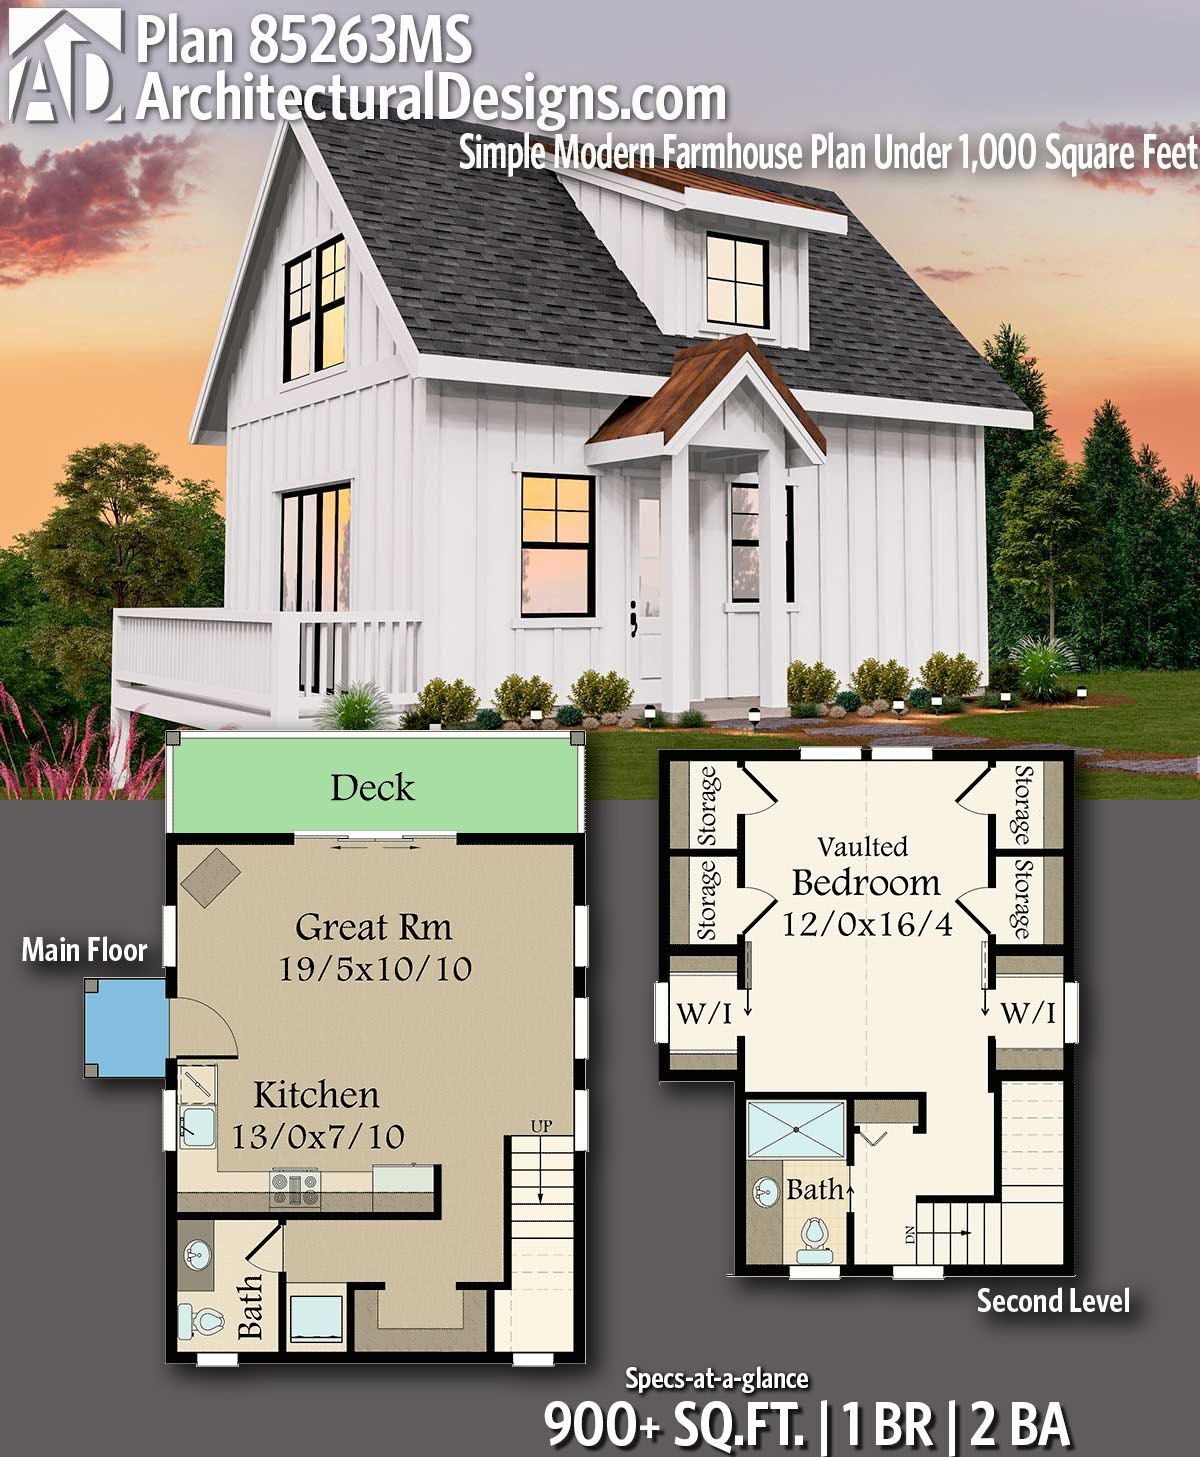 Architectural designs tiny house plan 85263ms with 1 bedrooms 2 full baths in 900 sq ft per unit ready when you are where do you want to build